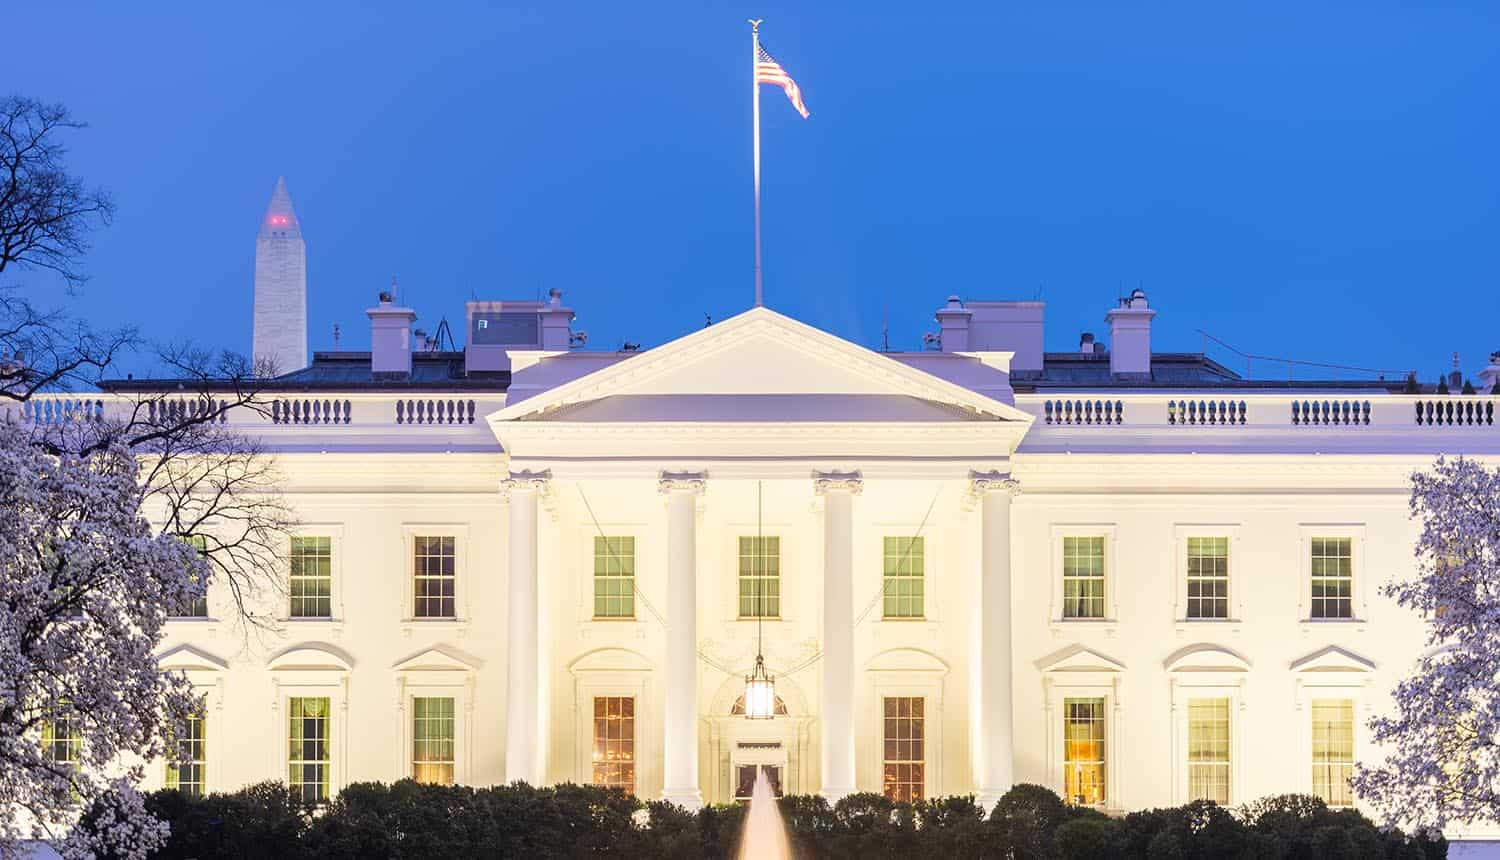 White House in spring season at twilight showing open letter on ransomware attacks on critical infrastructure